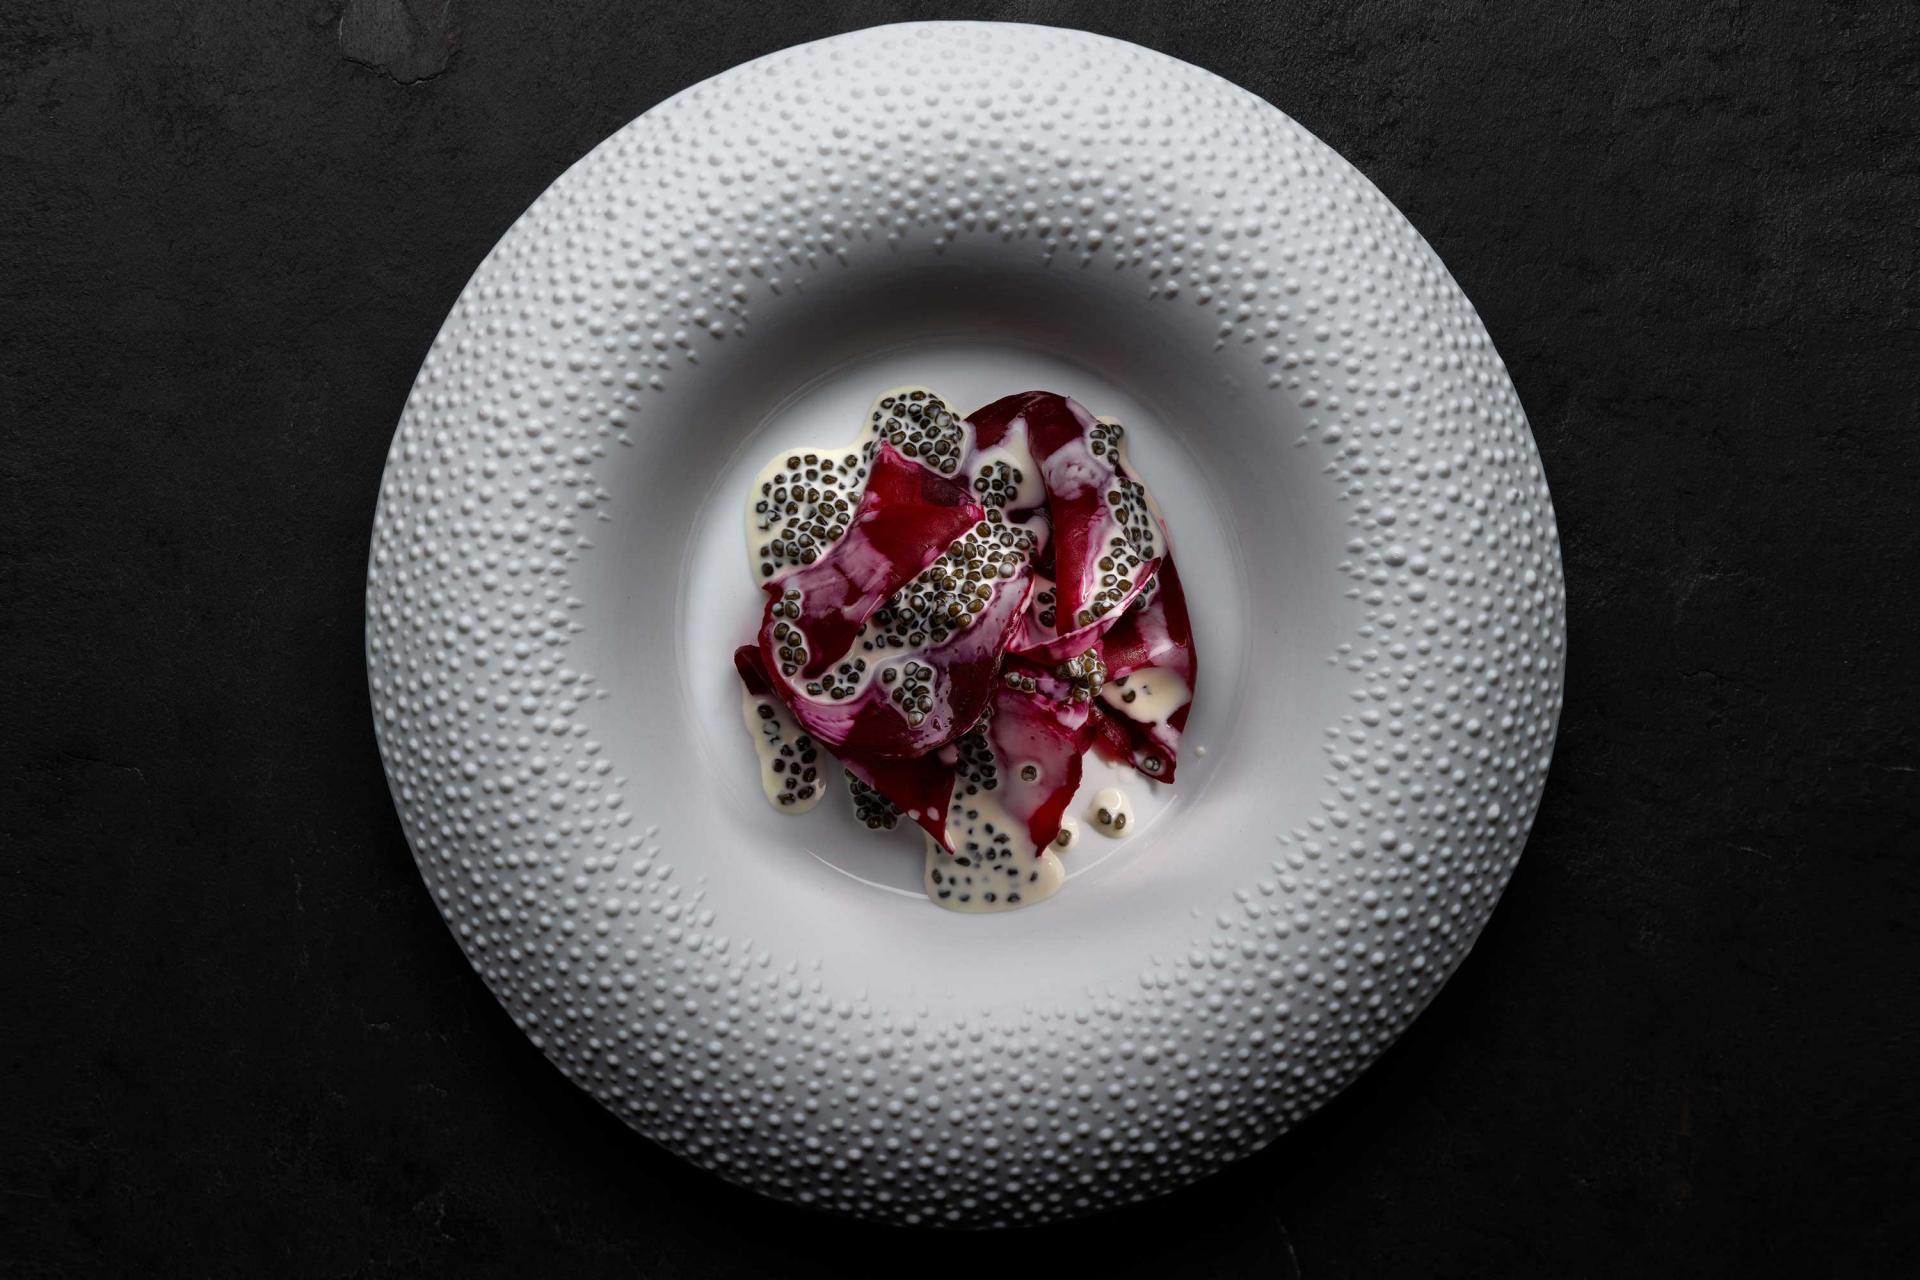 Salted beetroot with caviar at Mirazur